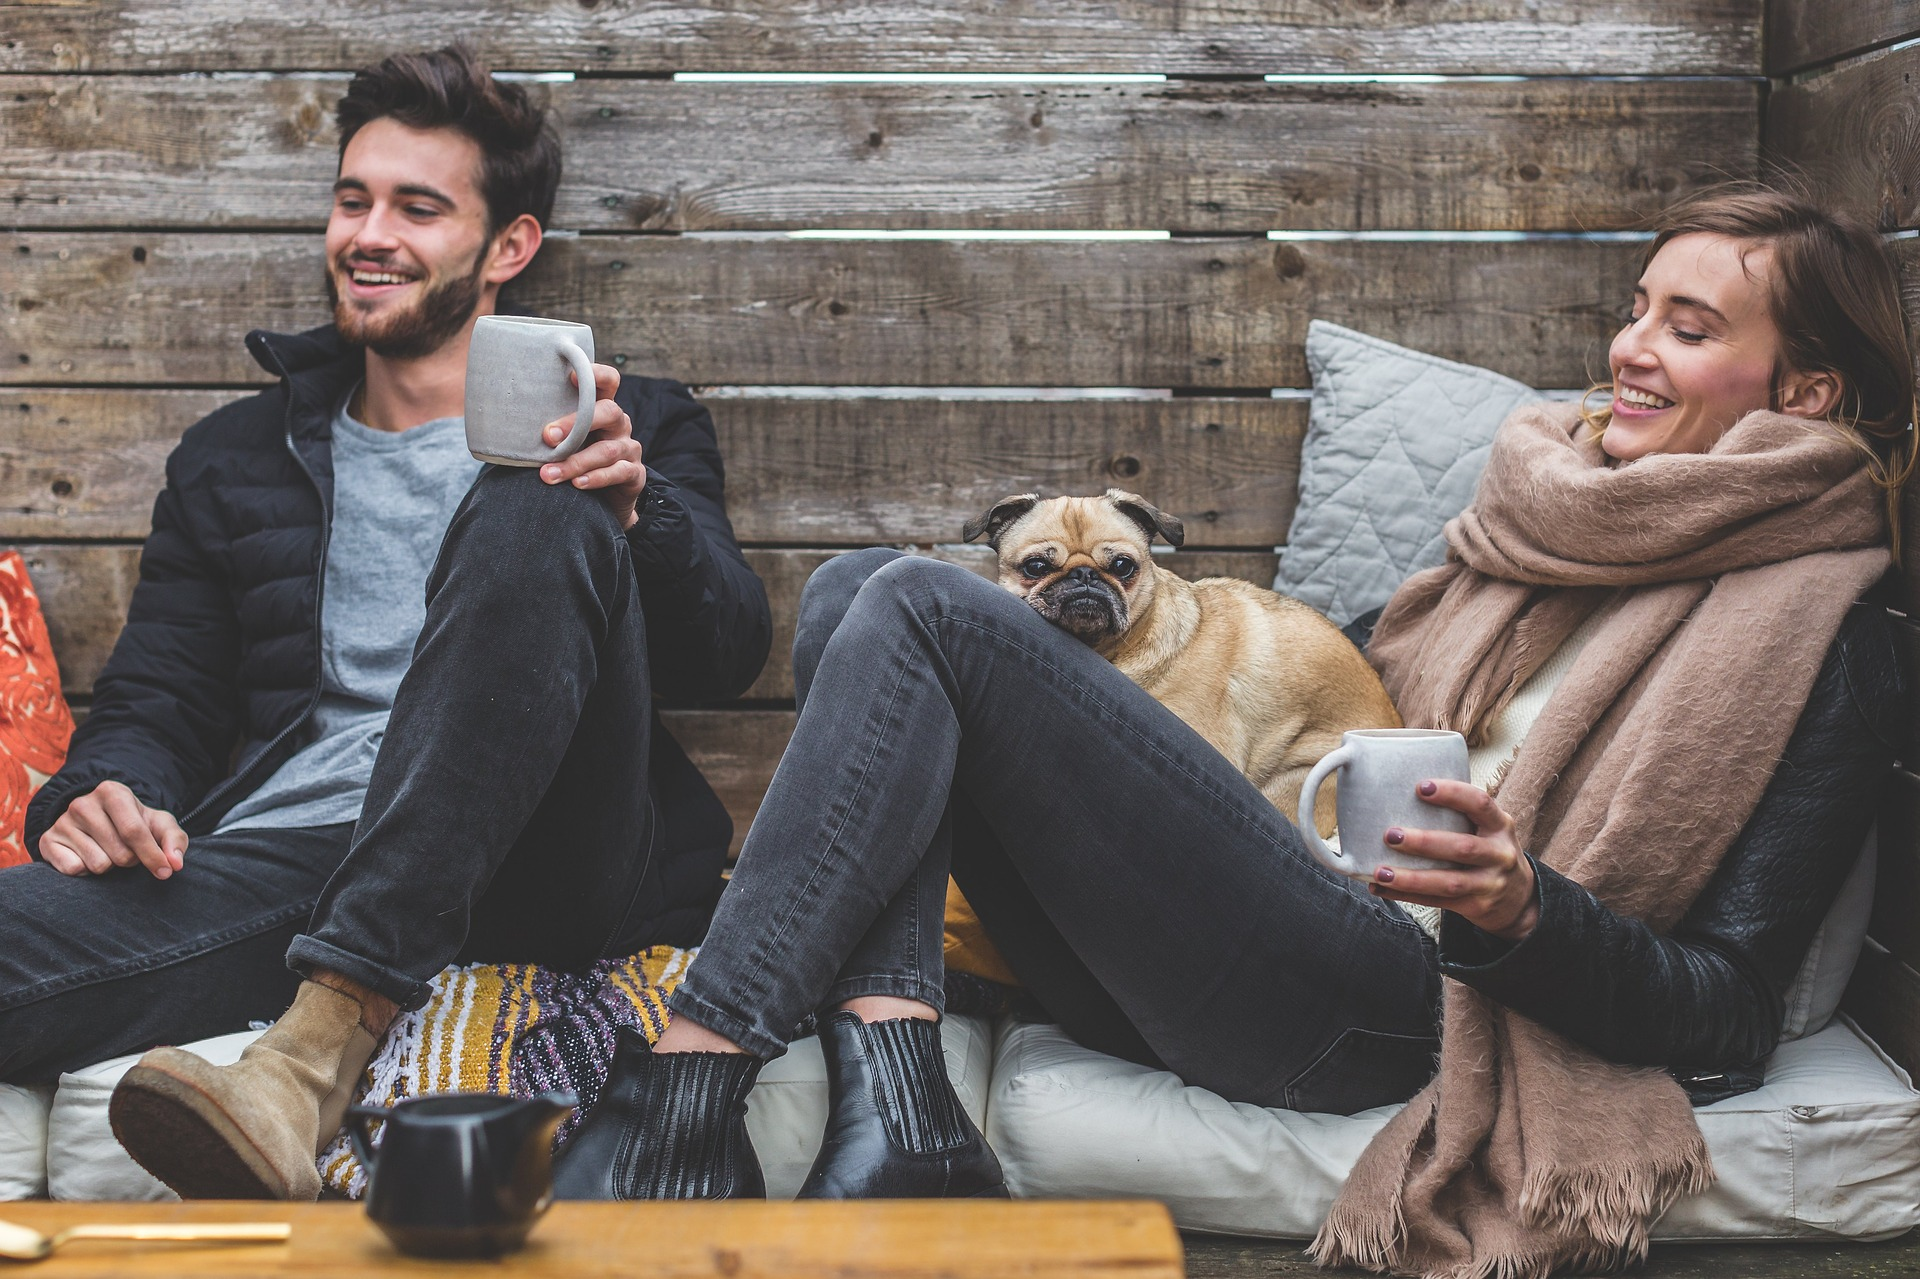 Man explaining Addiction to Loved Ones while drinking coffee